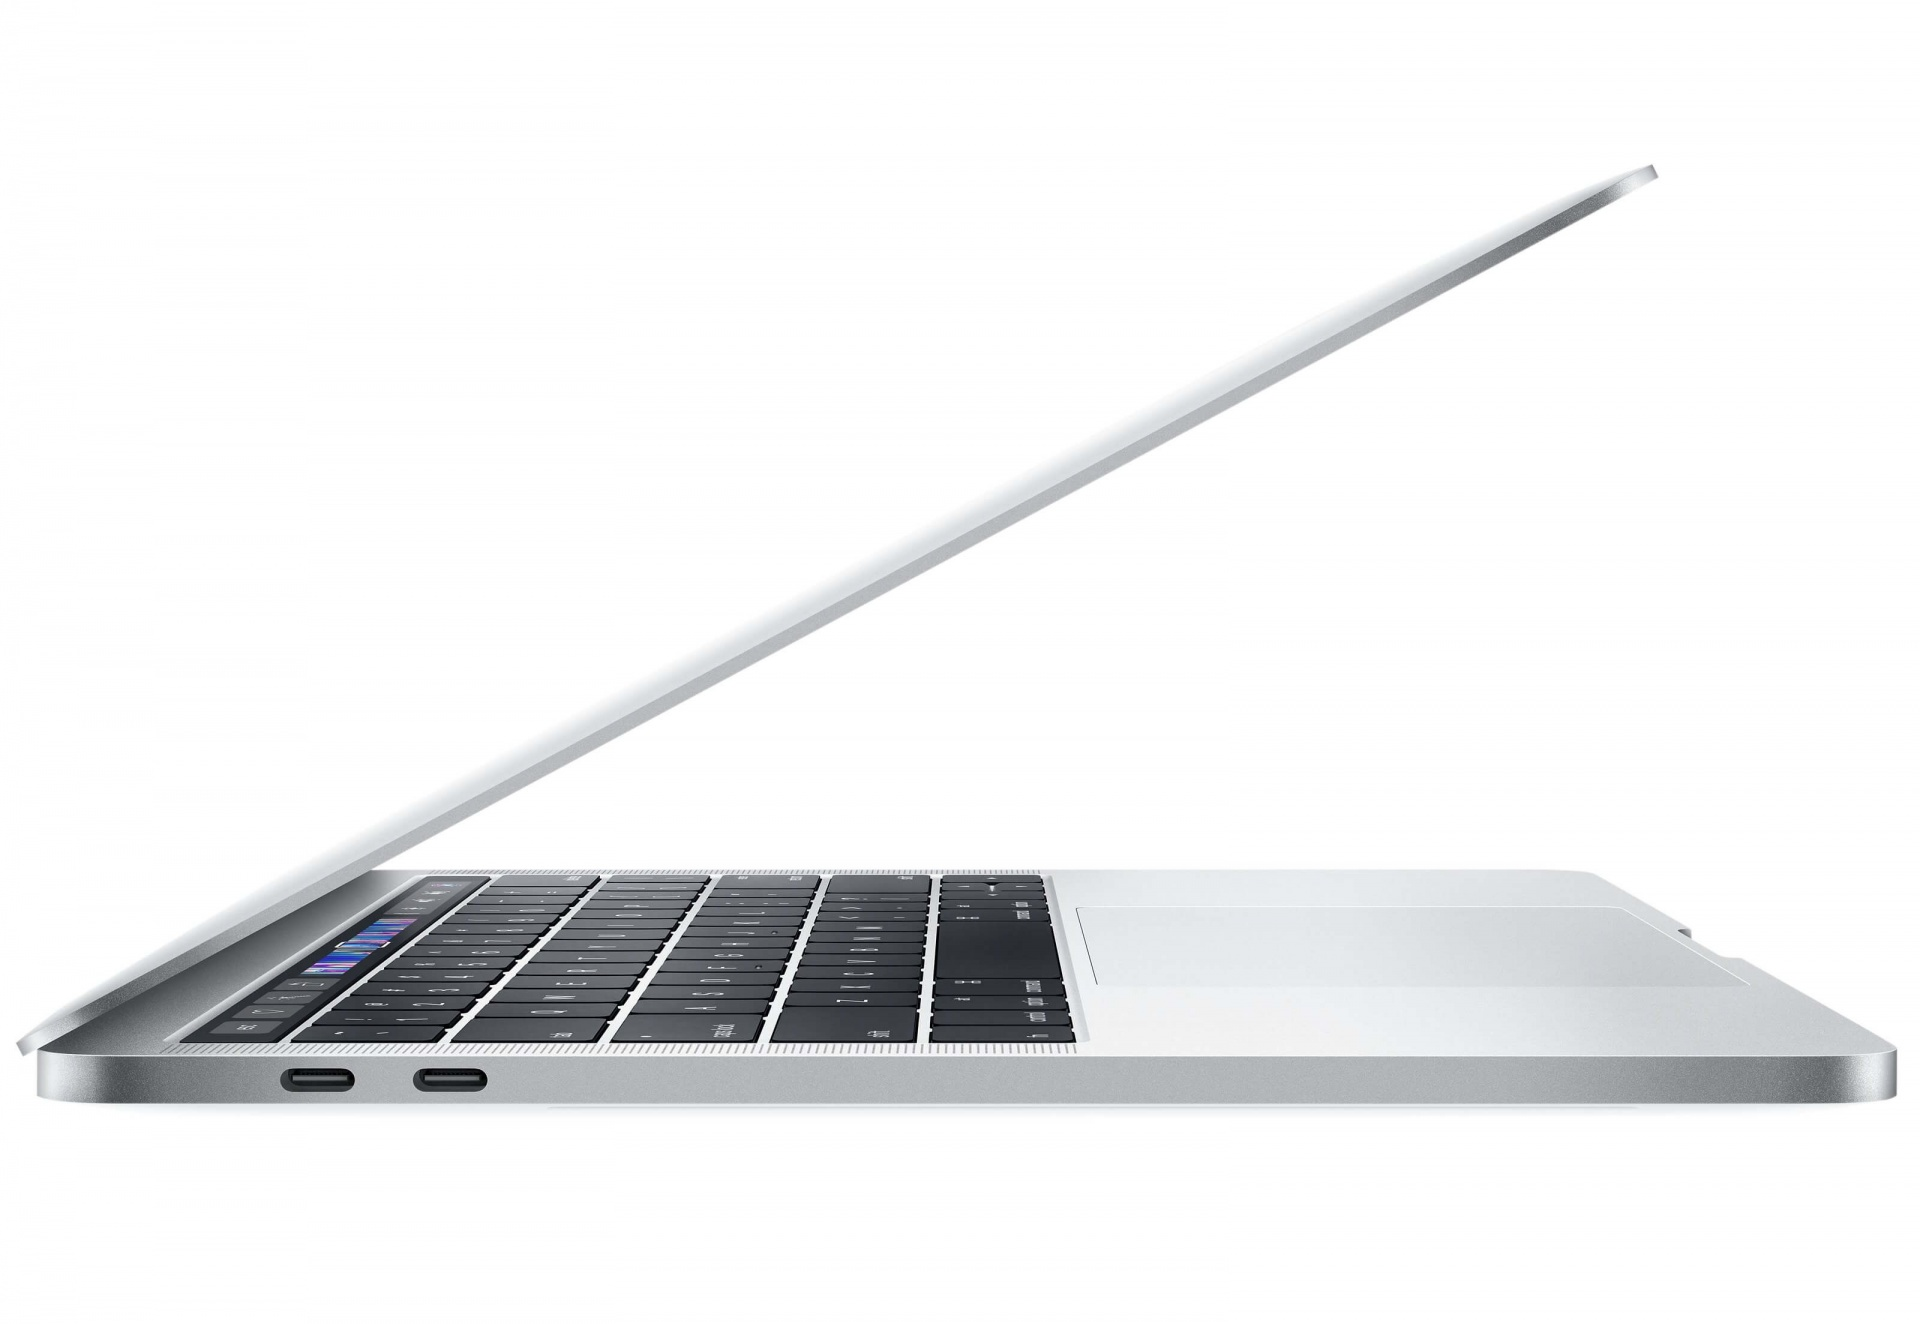 Macbook после замены корпуса